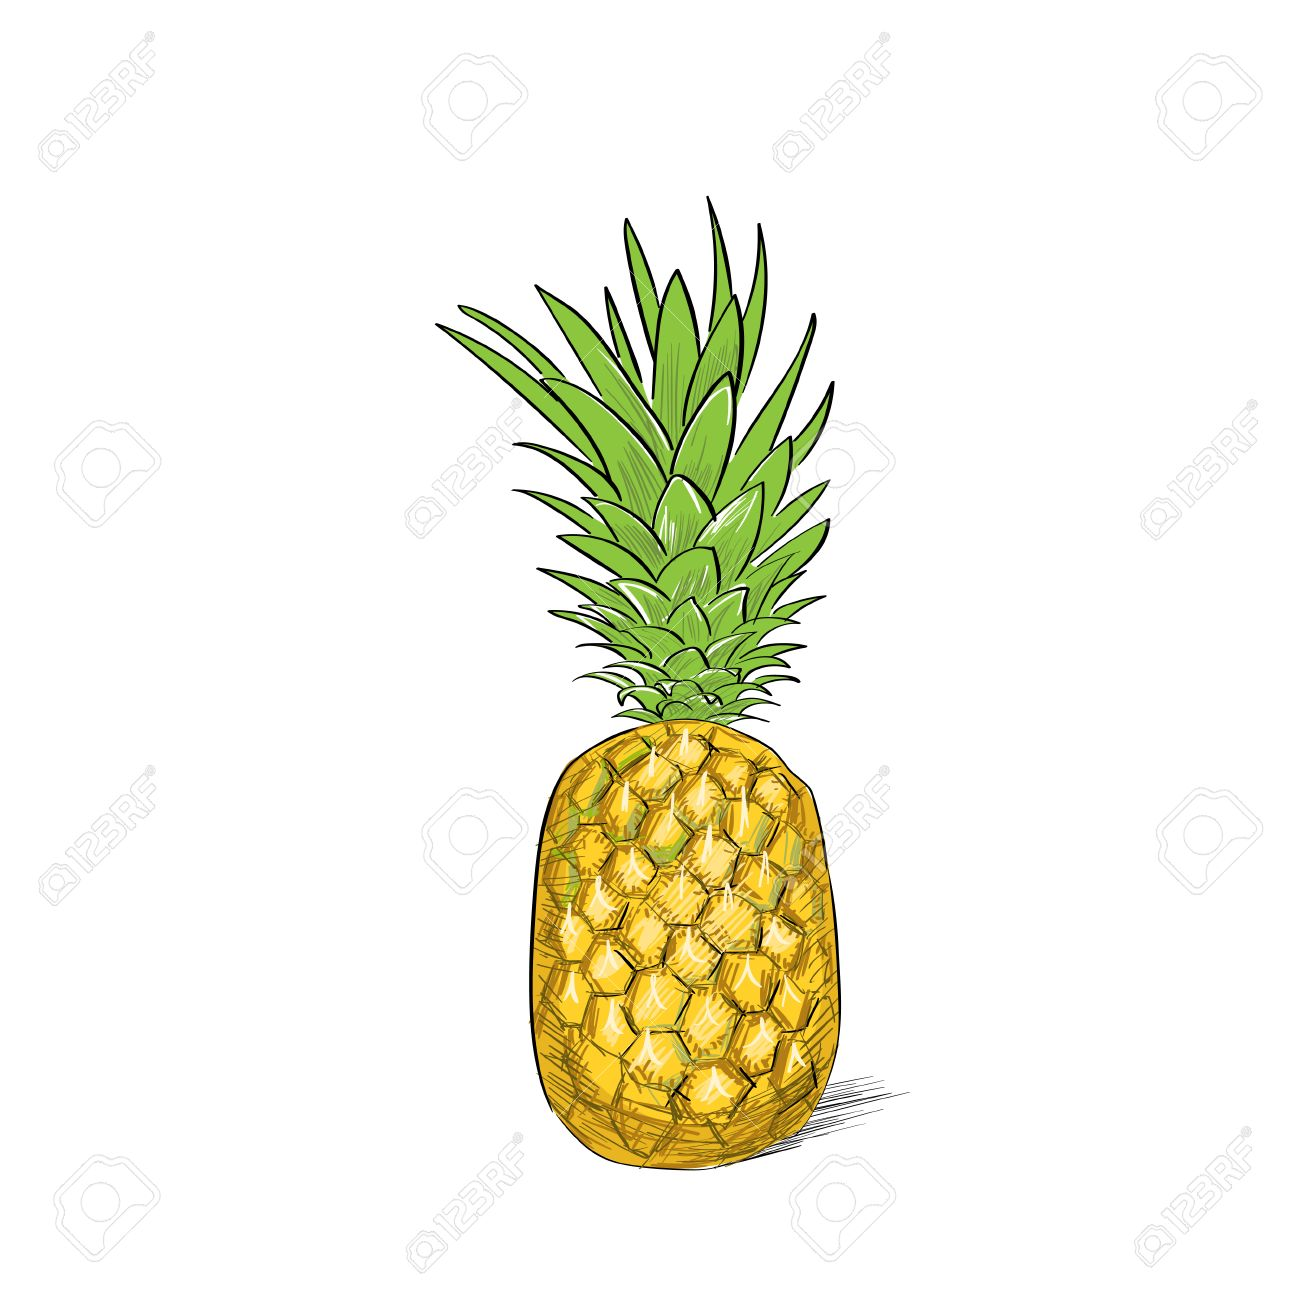 Uncategorized Pineapple Picture To Color pineapple fruit color sketch draw isolated over white background stock vector 37887568